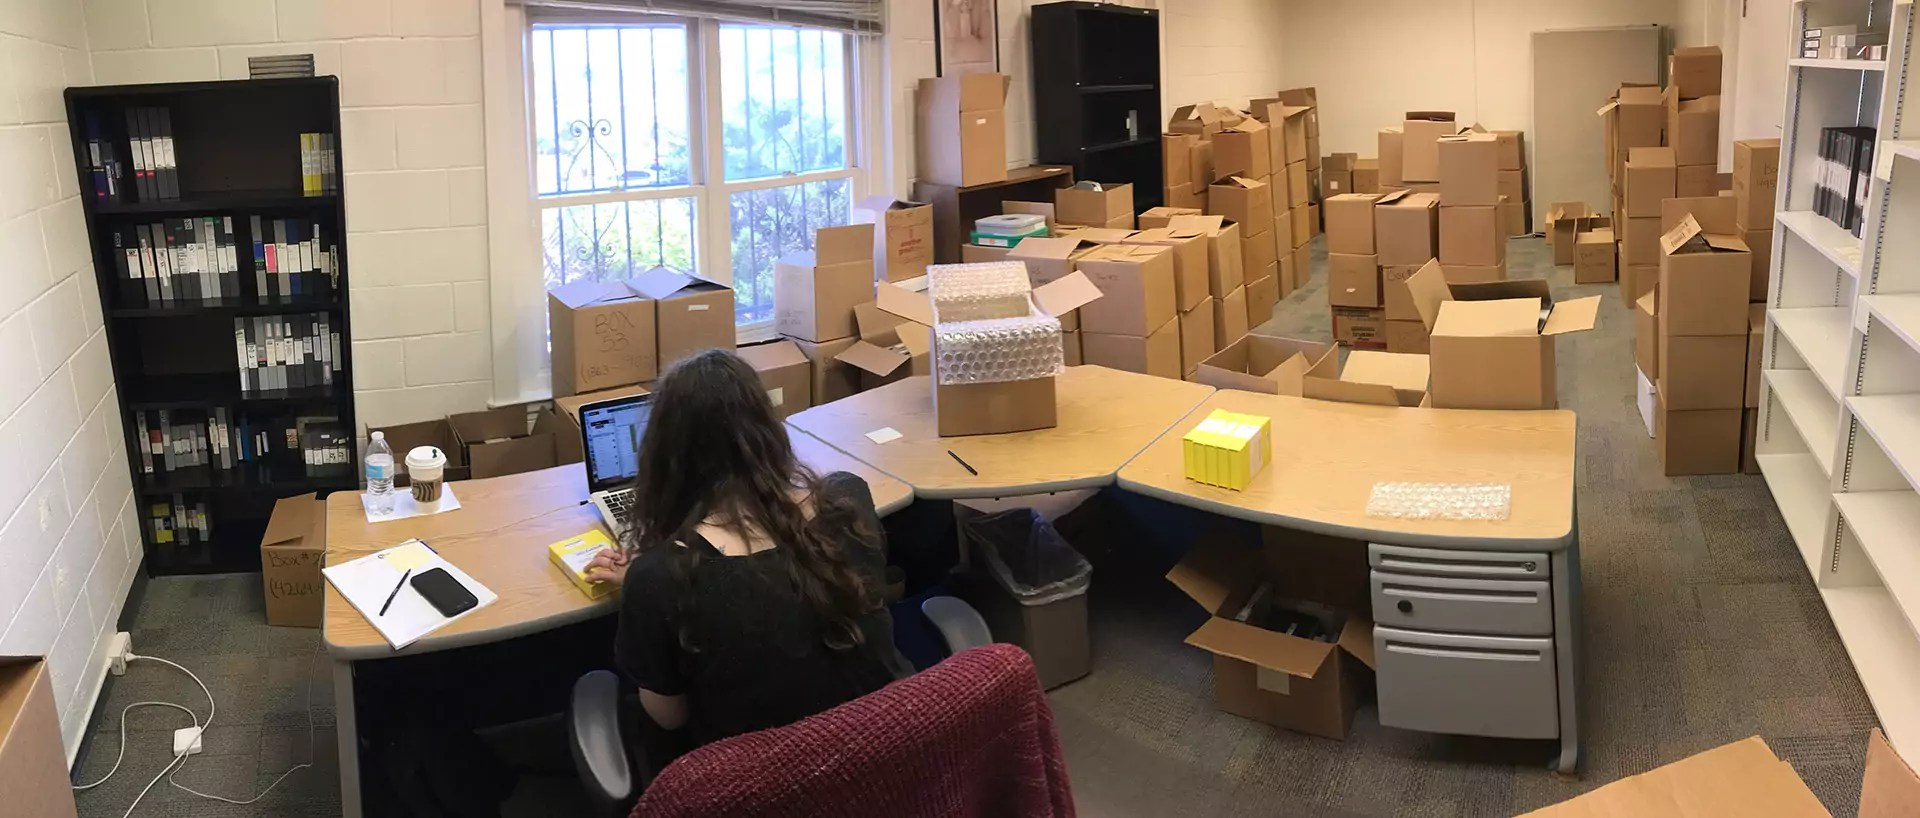 Archivist Megan Rose works at a desk to process boxes of media.